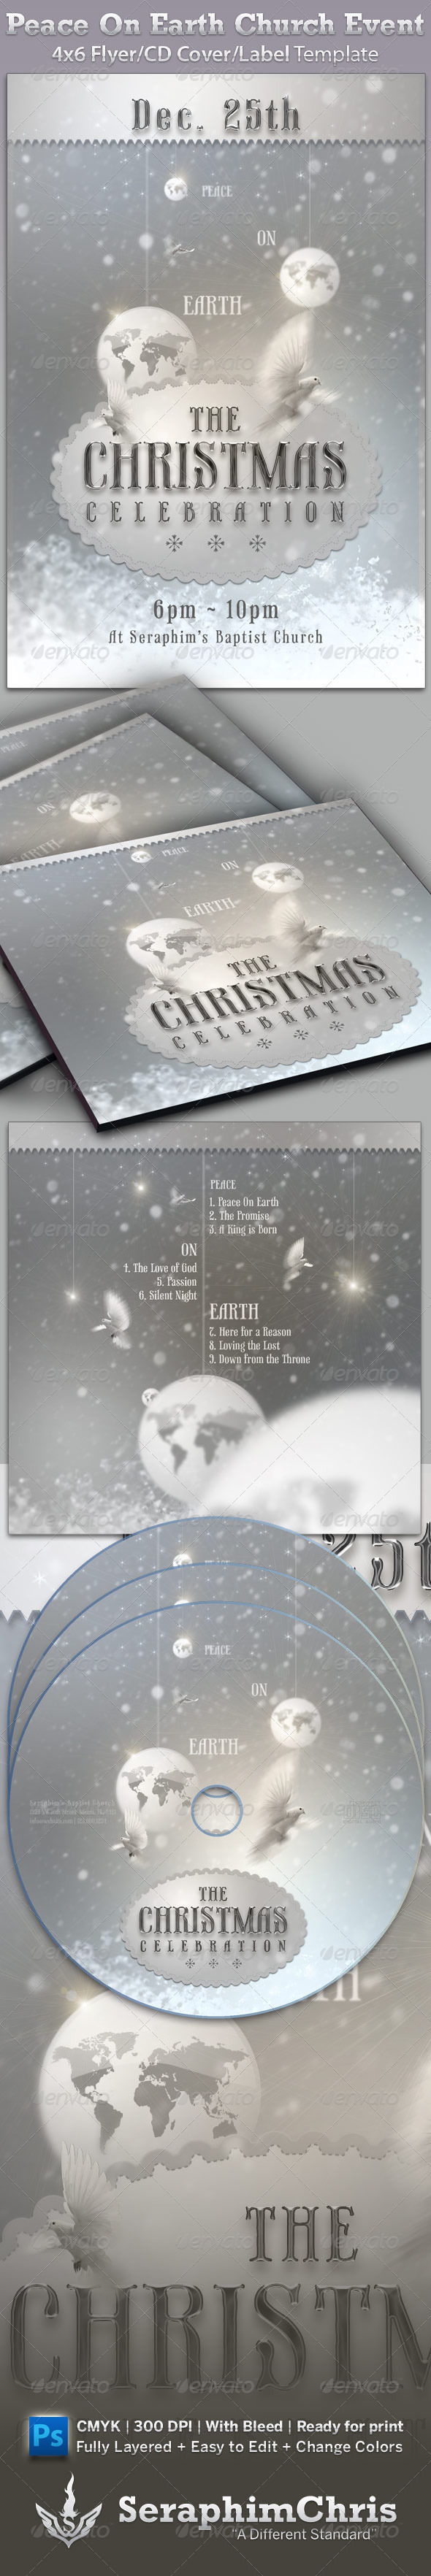 Peace On Earth: Church Flyer and CD Template - Church Flyers